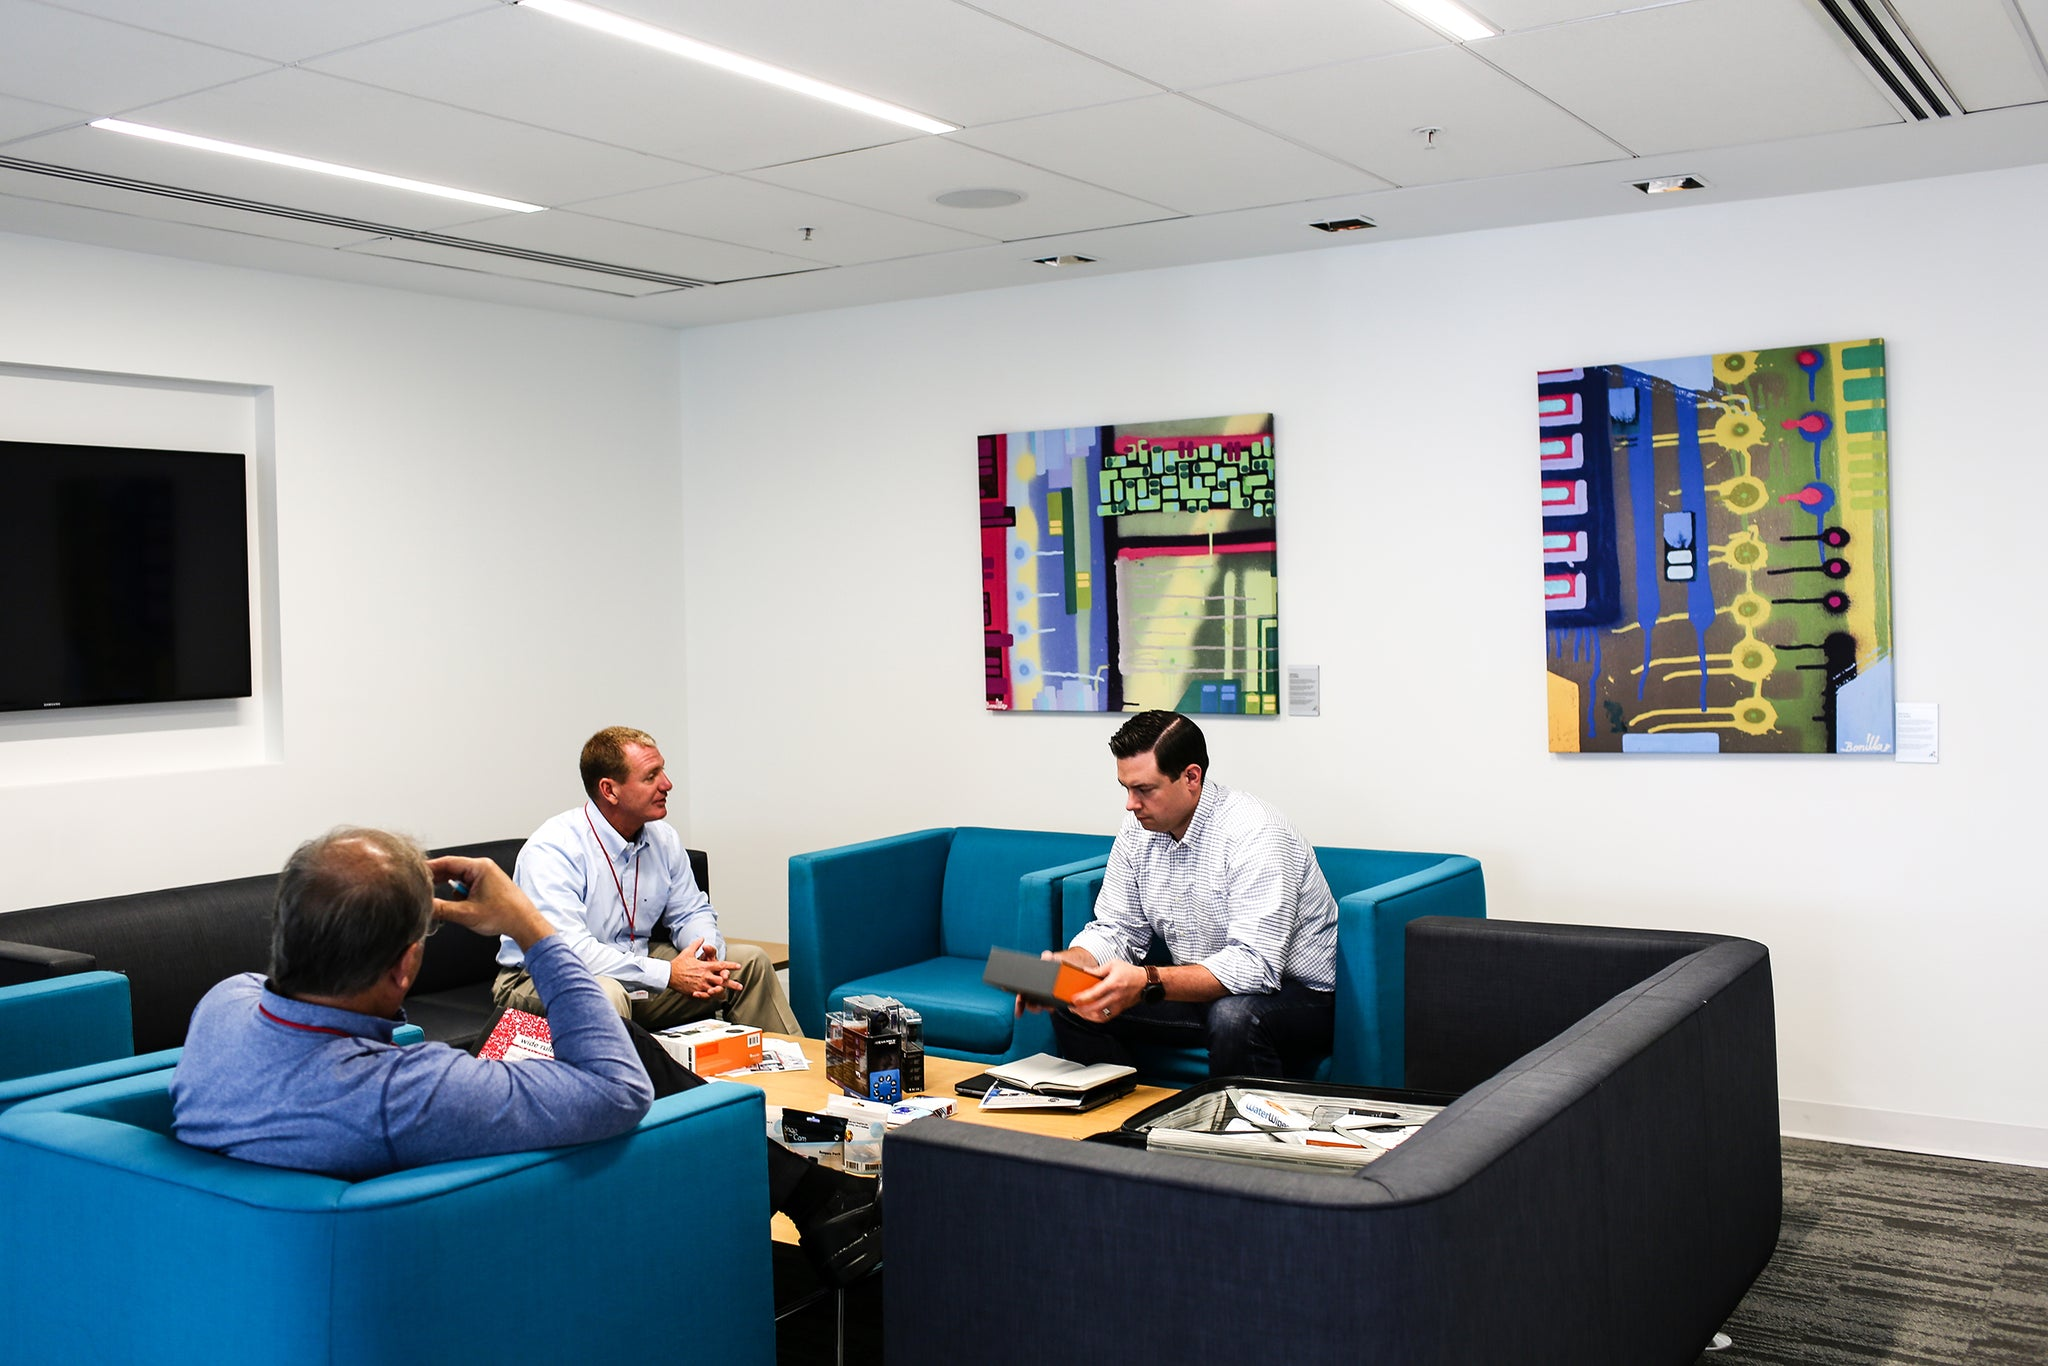 """Bringing ArtLifting in was such an easy decision because you want to have a corporate office that has a homey feel and that inspires your associates."" - John Burke, Chief Culture Officer"